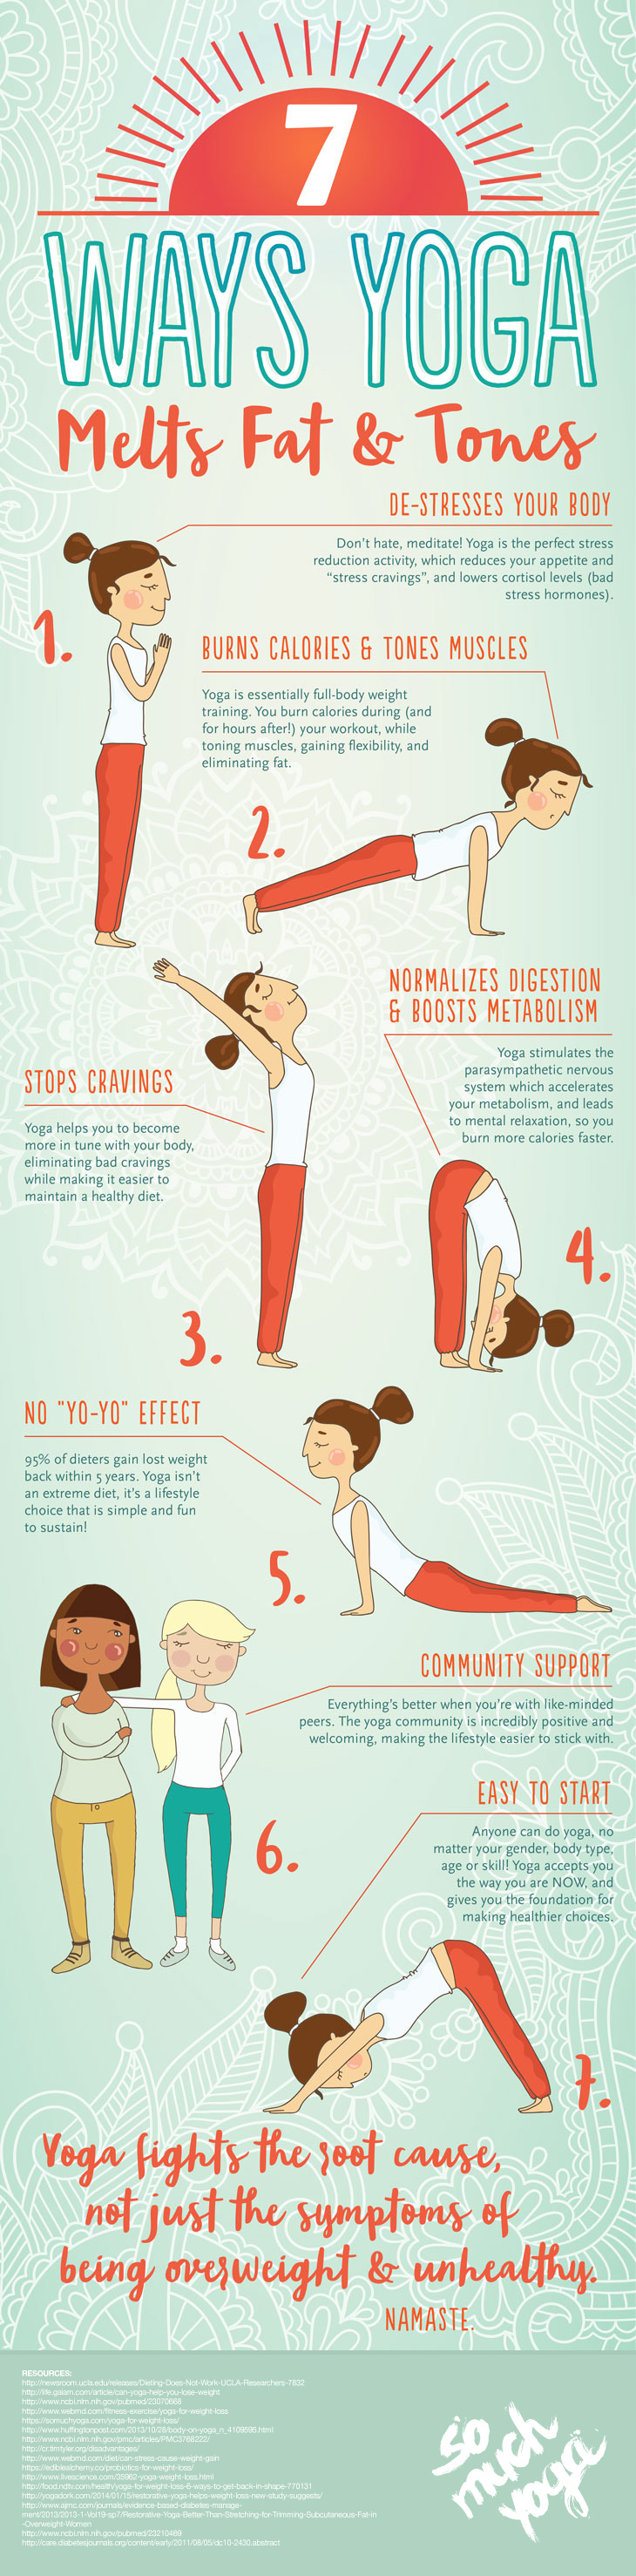 Yoga-for-weight-loss-infographic-new